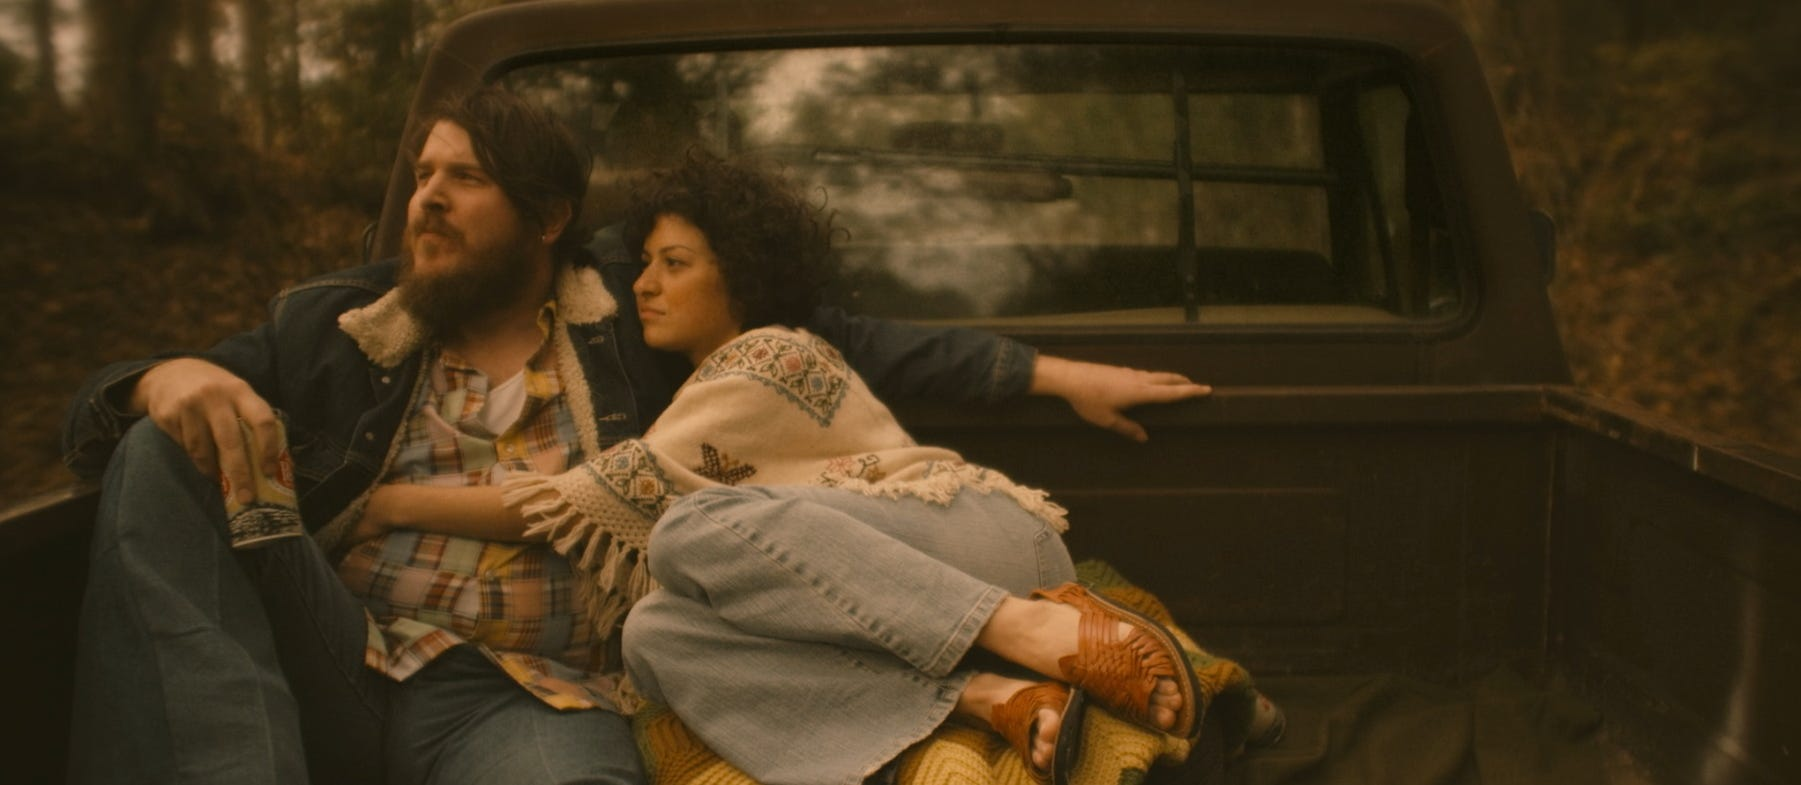 """Ben Dickey (left) plays Blaze Foley, a Texas singer-songwriter legend in the making, with Alia Shawkat as his wife and muse, Sybil Rosen, in """"Blaze."""""""